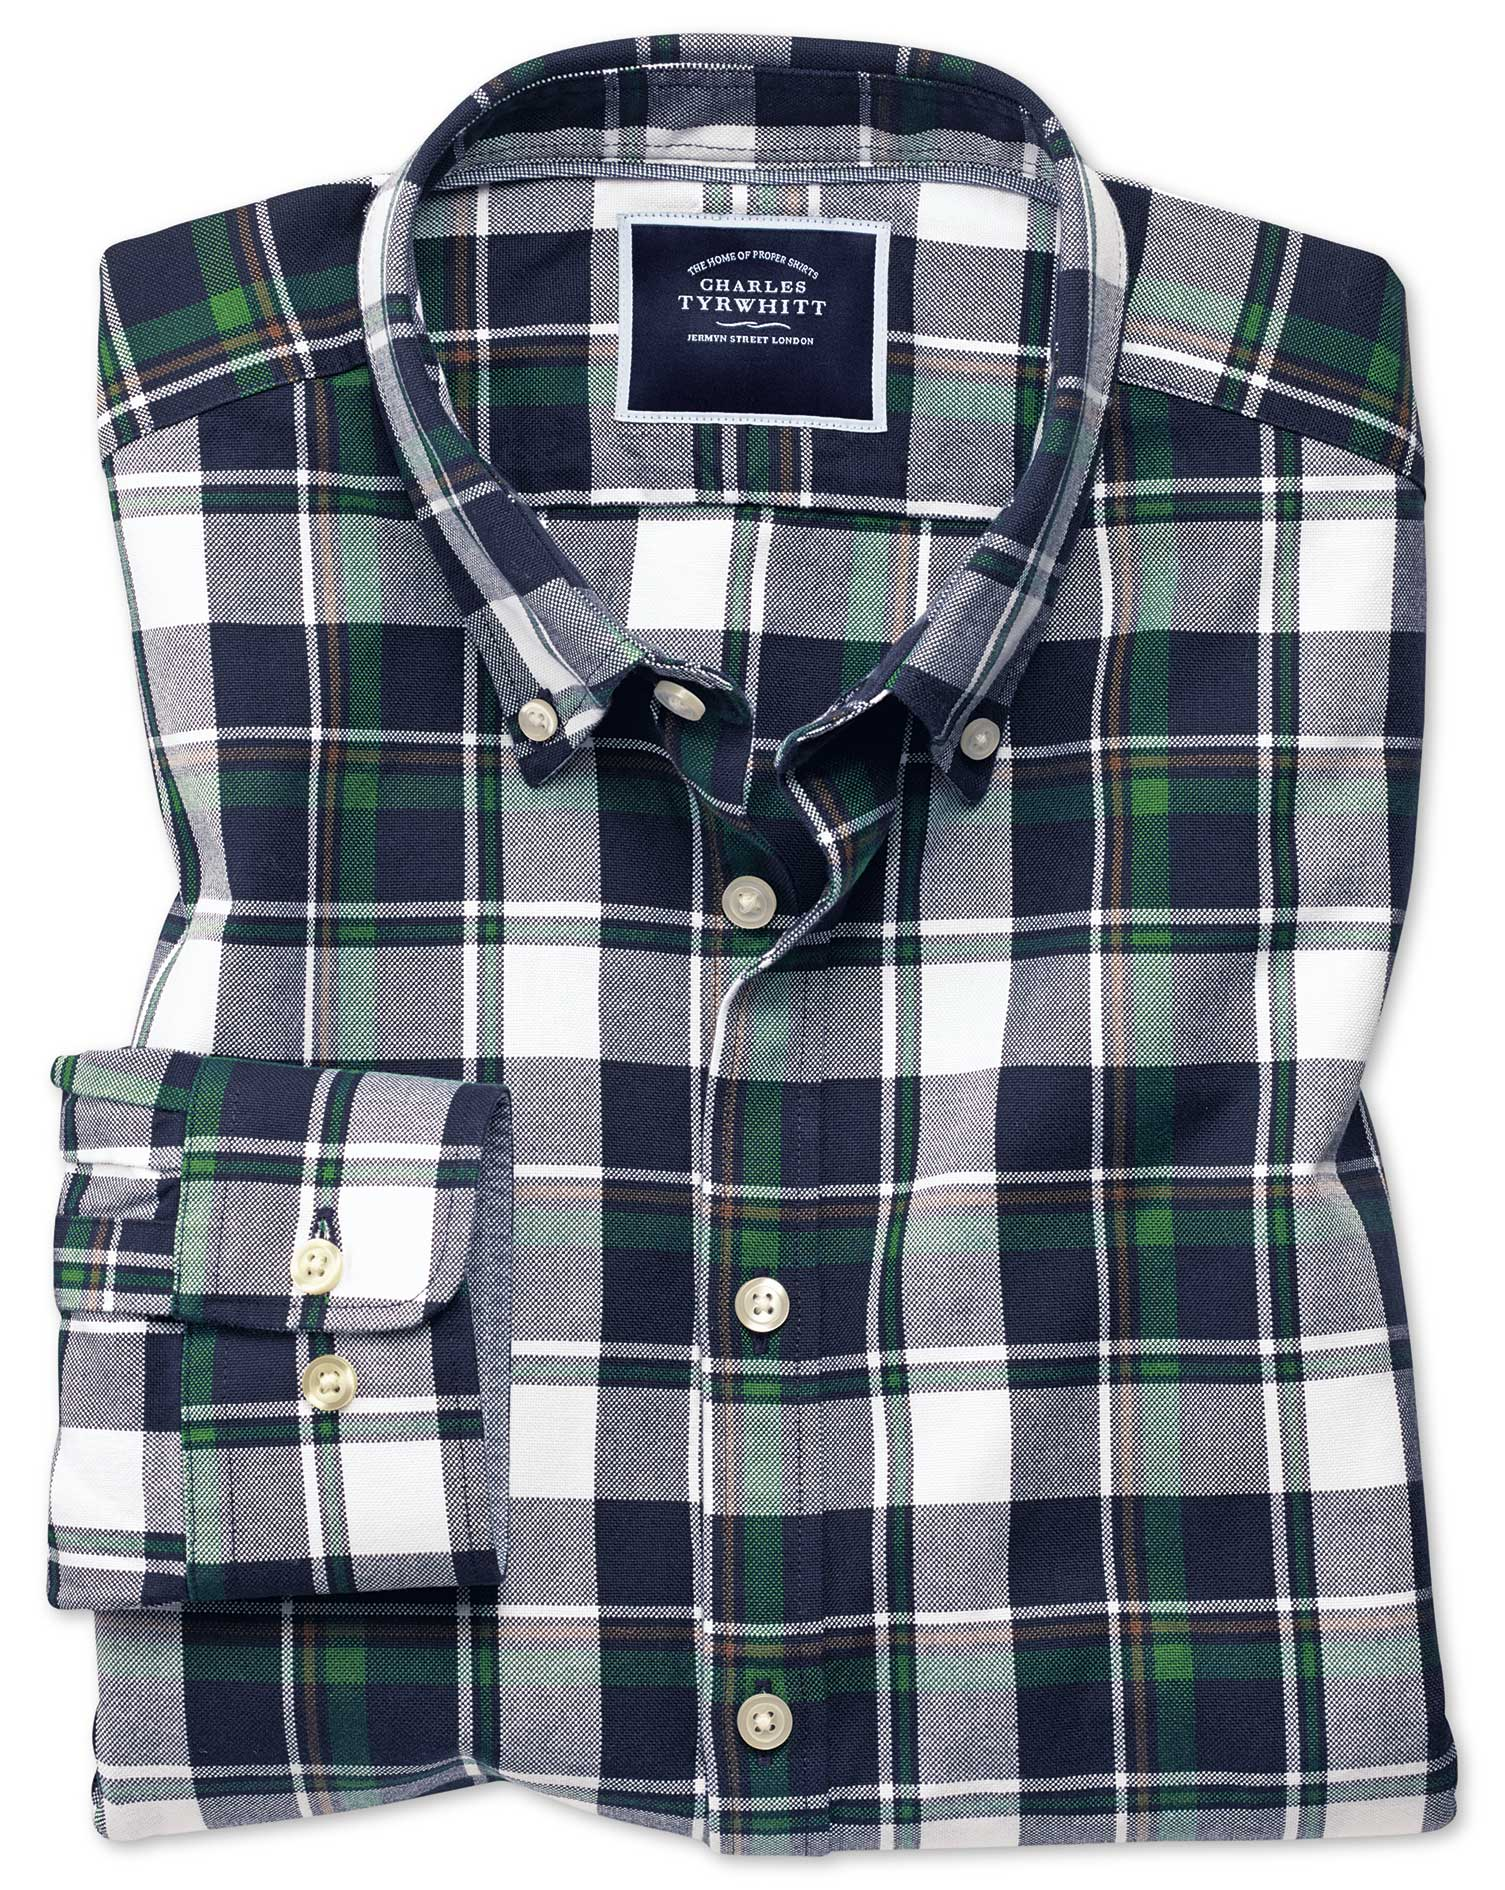 241a3f1e9 Extra slim fit navy and green large check washed Oxford shirt ...